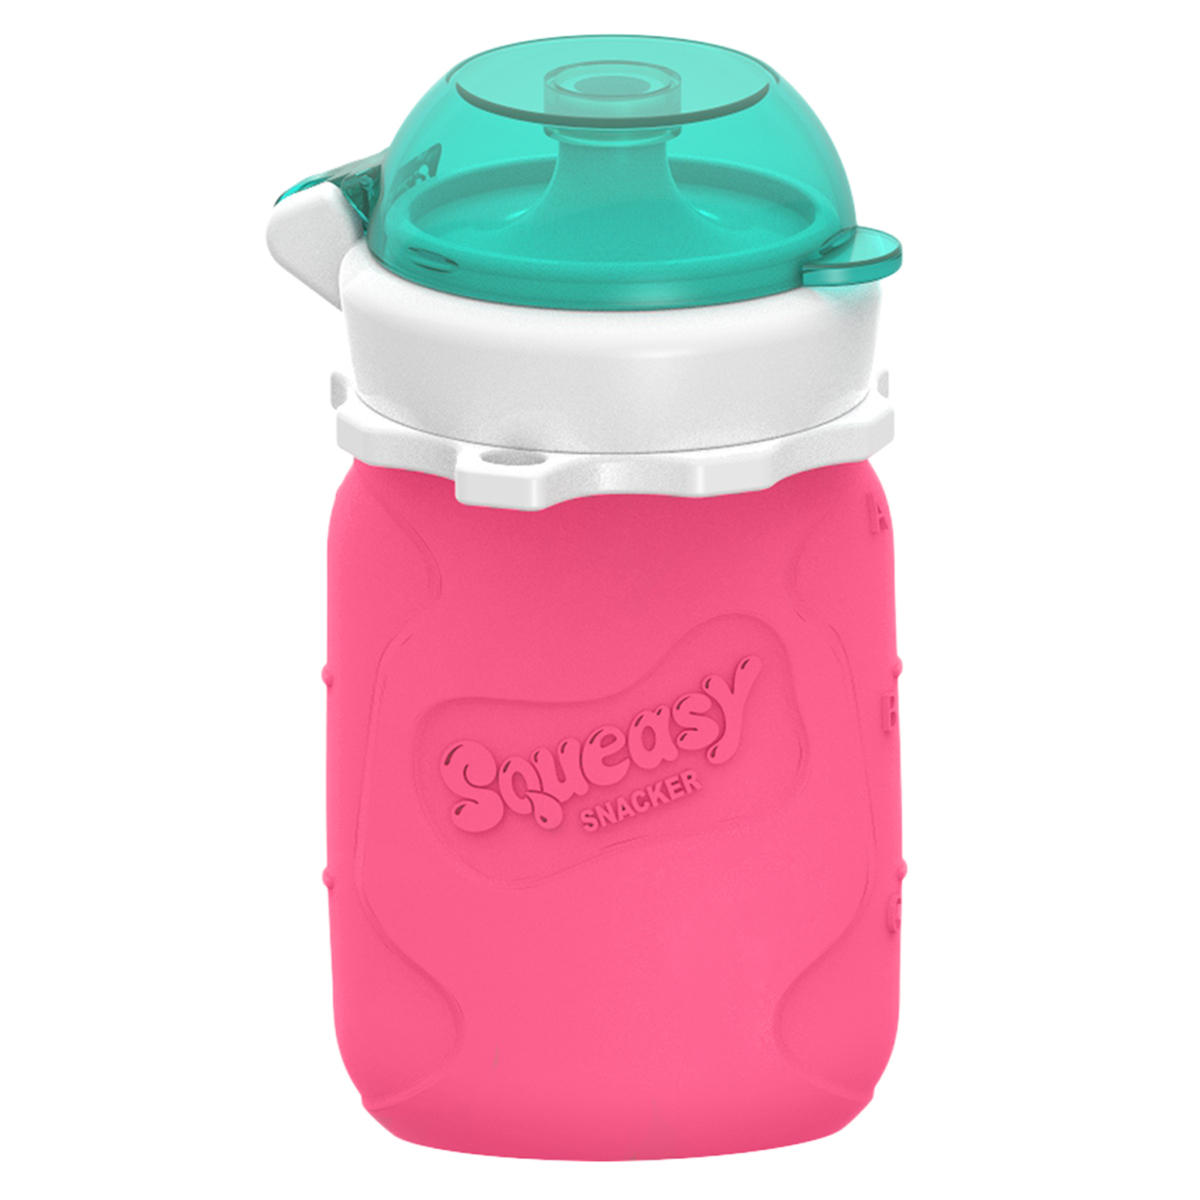 Squeasy Gear Snacker - Pink (104ml) image